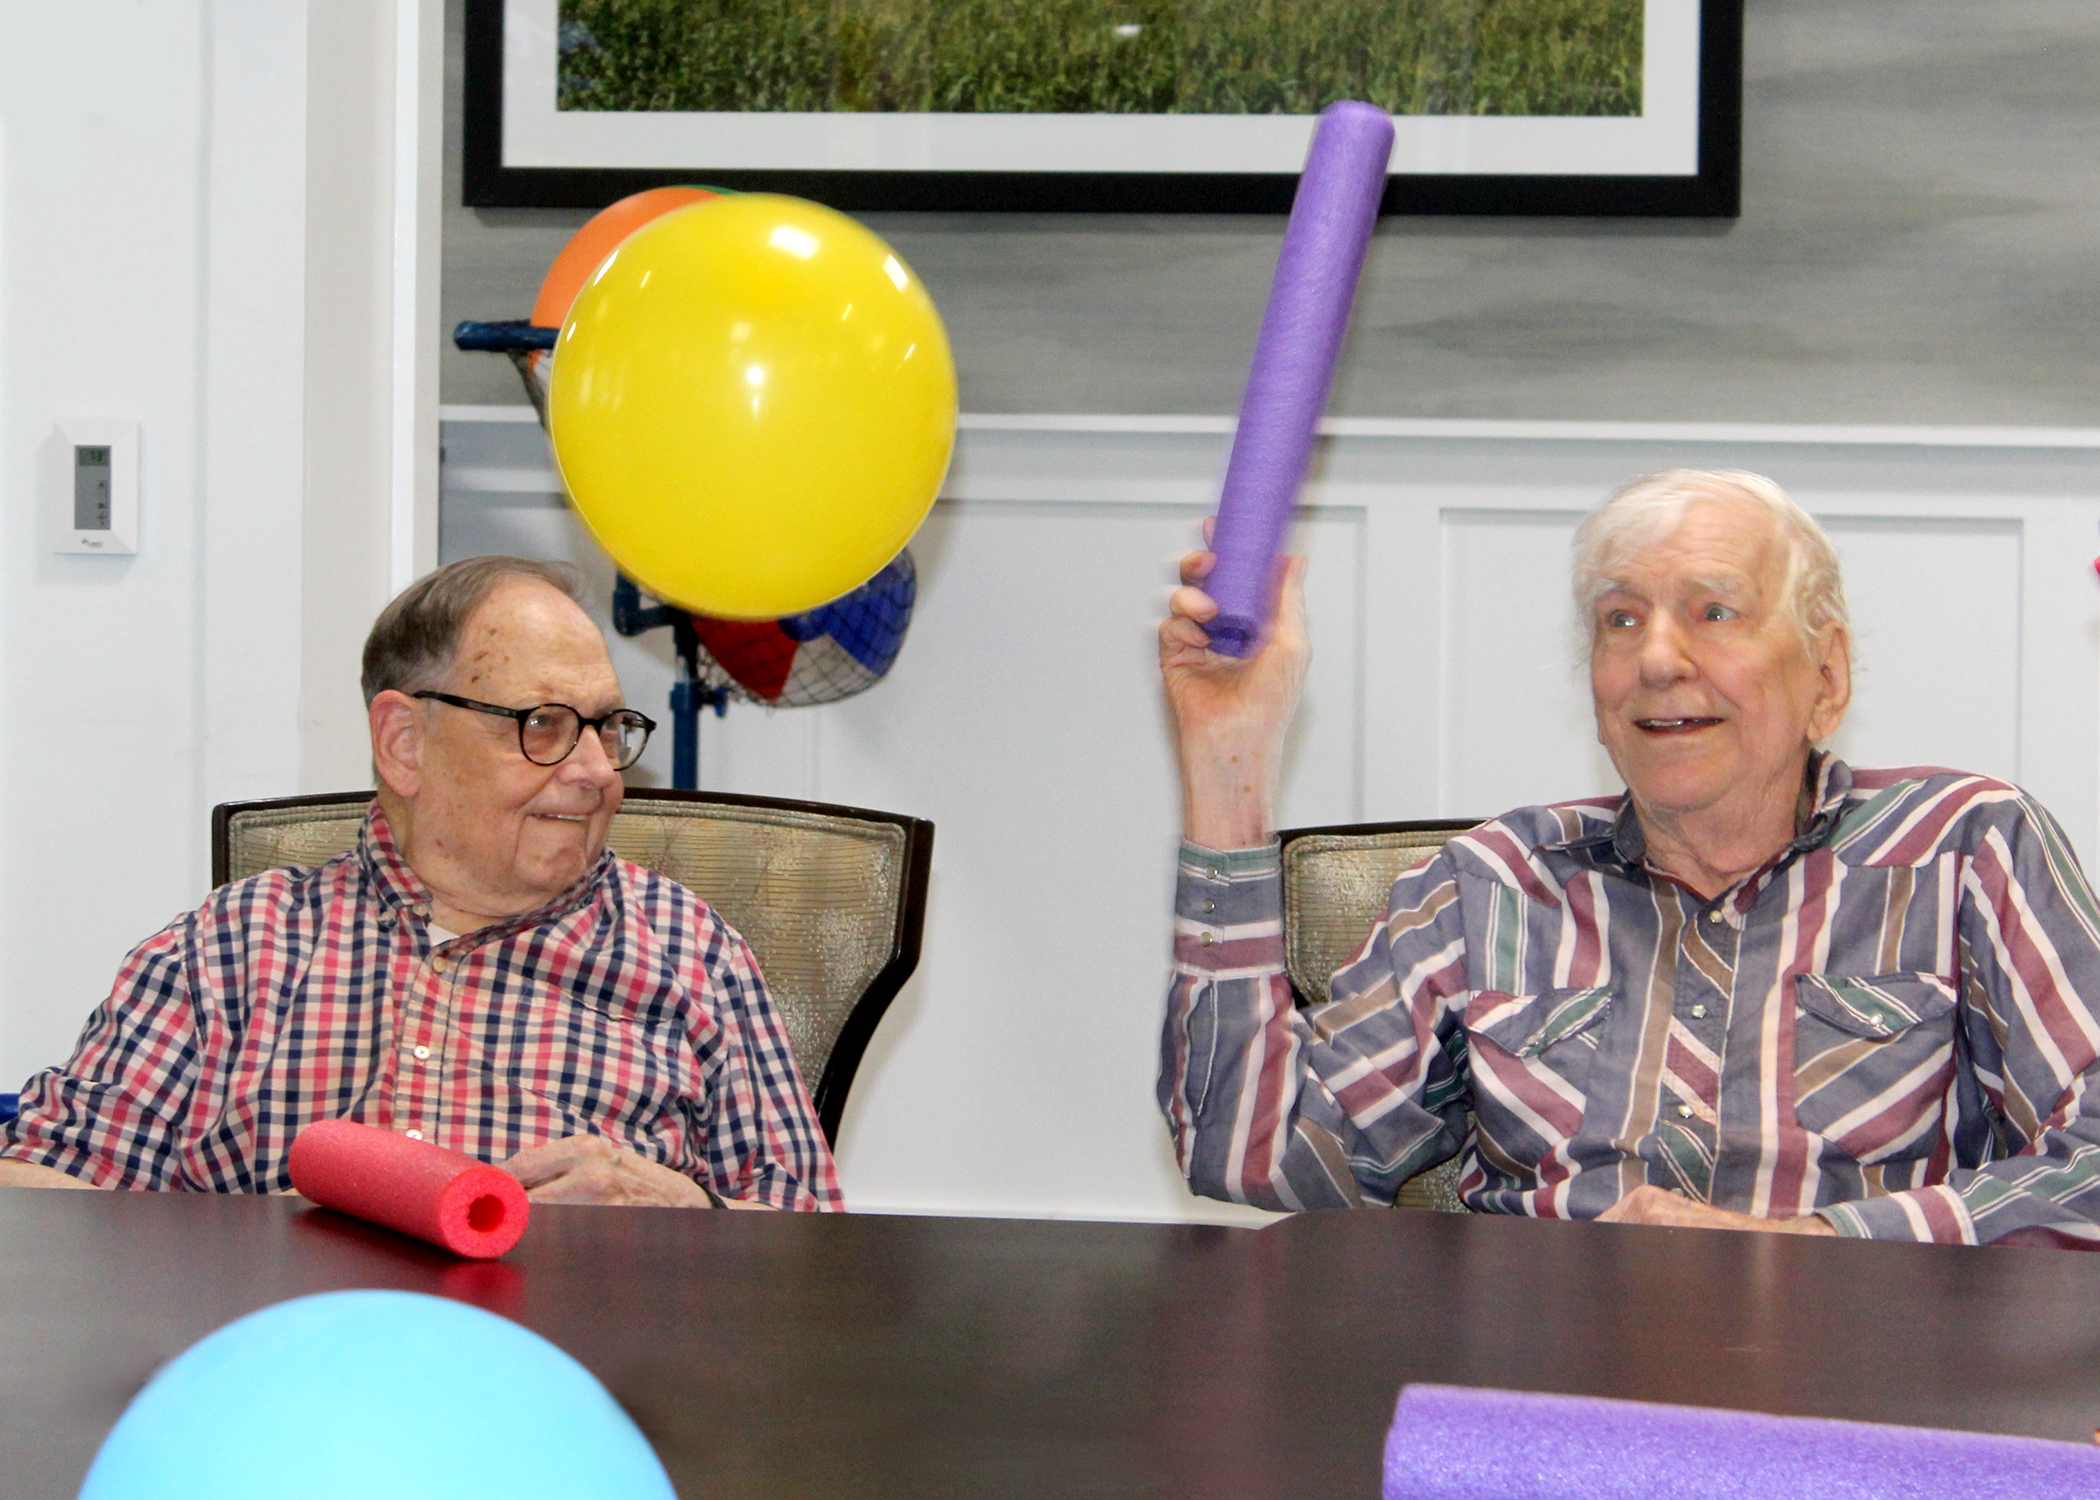 Two male memory care residents playing balloon noodle with colorful balloons in the air